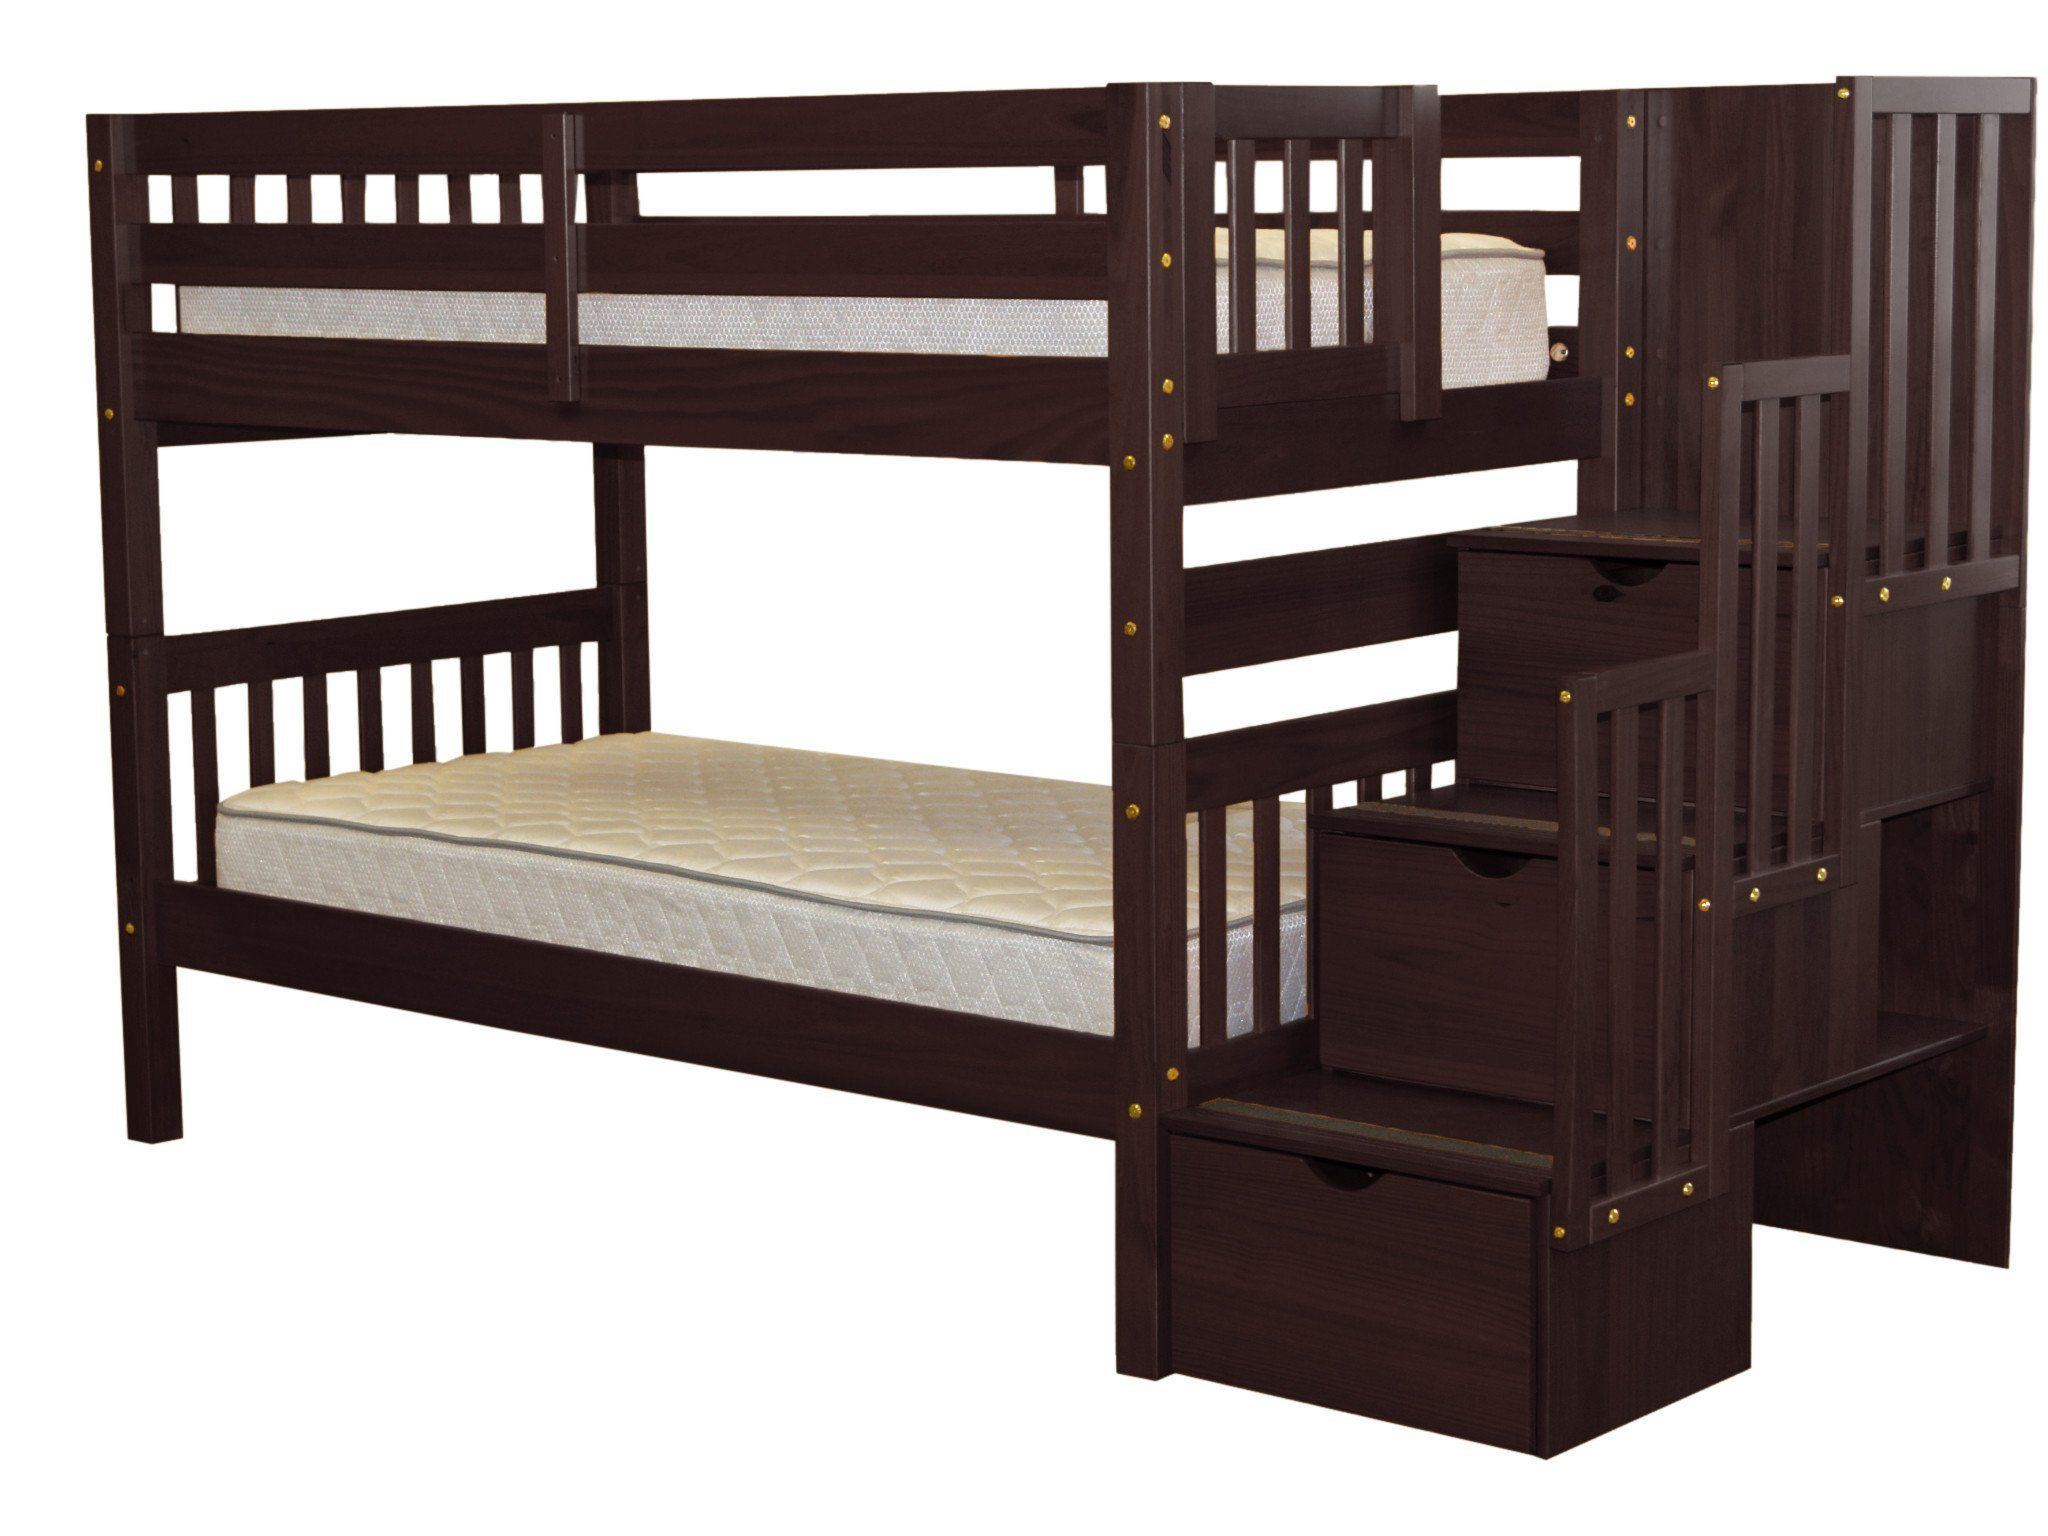 Bedz King Stairway Bunk Beds Twin over Twin with 3 Drawers in the Steps, Cappuccino by Overstock